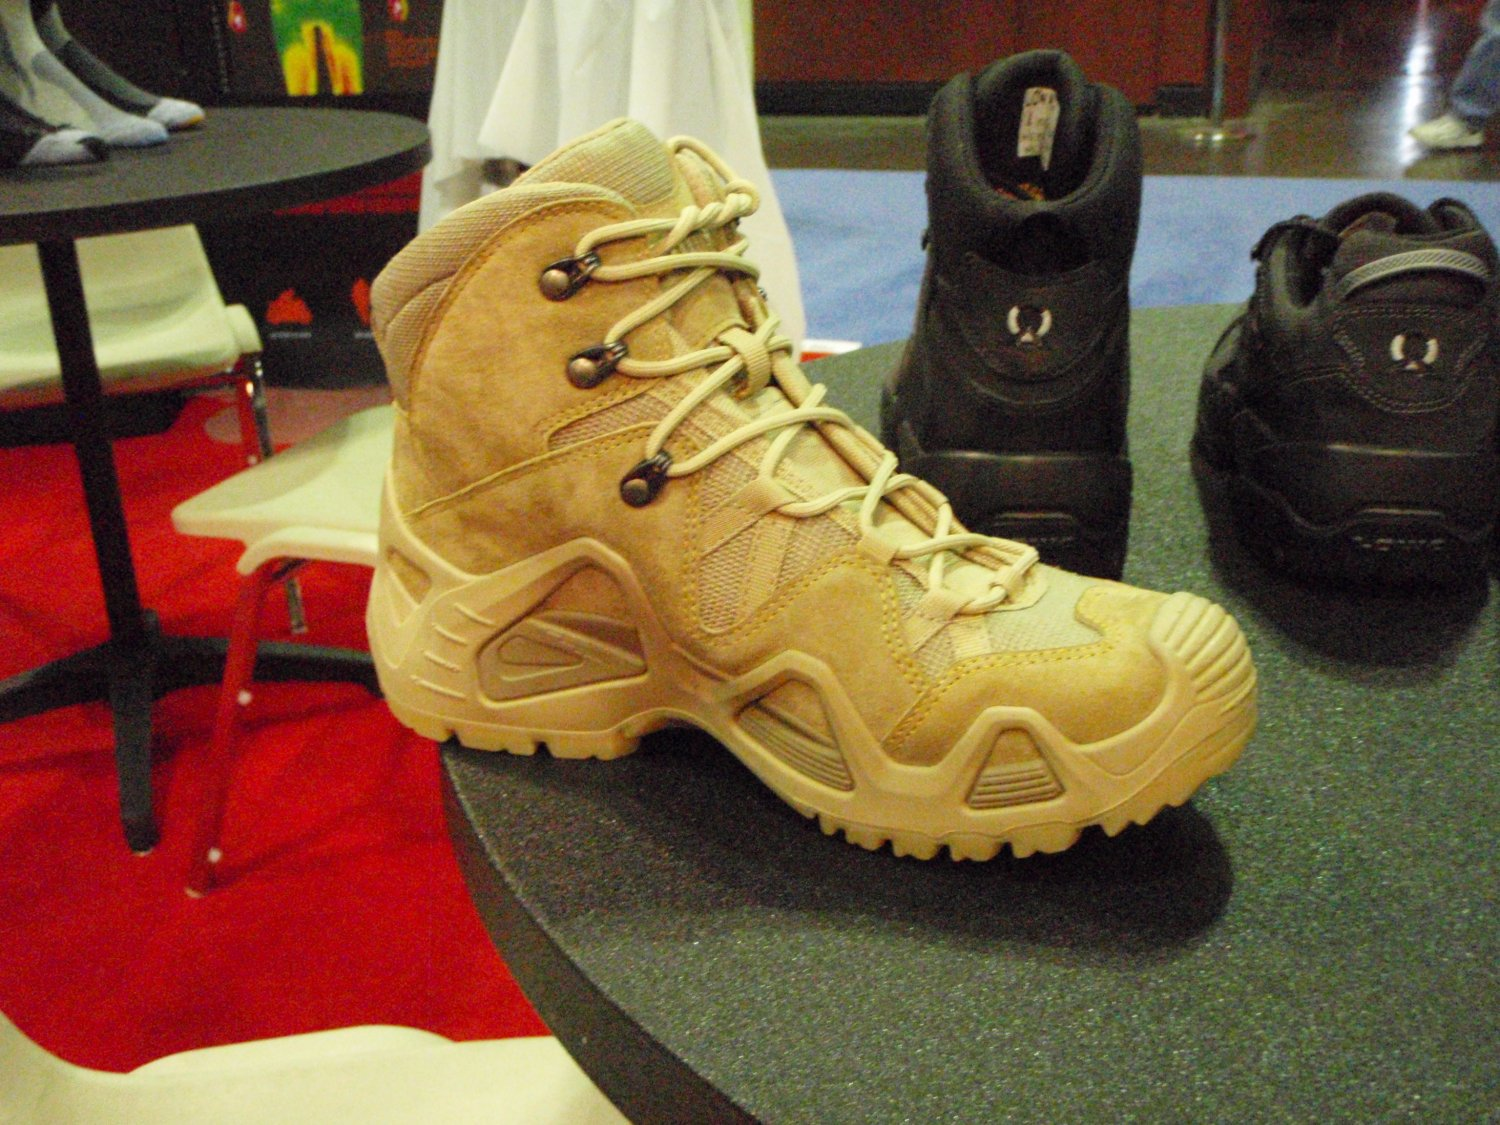 Lowa Tactical Boot 2 <!  :en  >LOWA Tactical Boots Introduces LOWA Desert Mid Tactical Boot at SHOT Show 2009<!  :  >